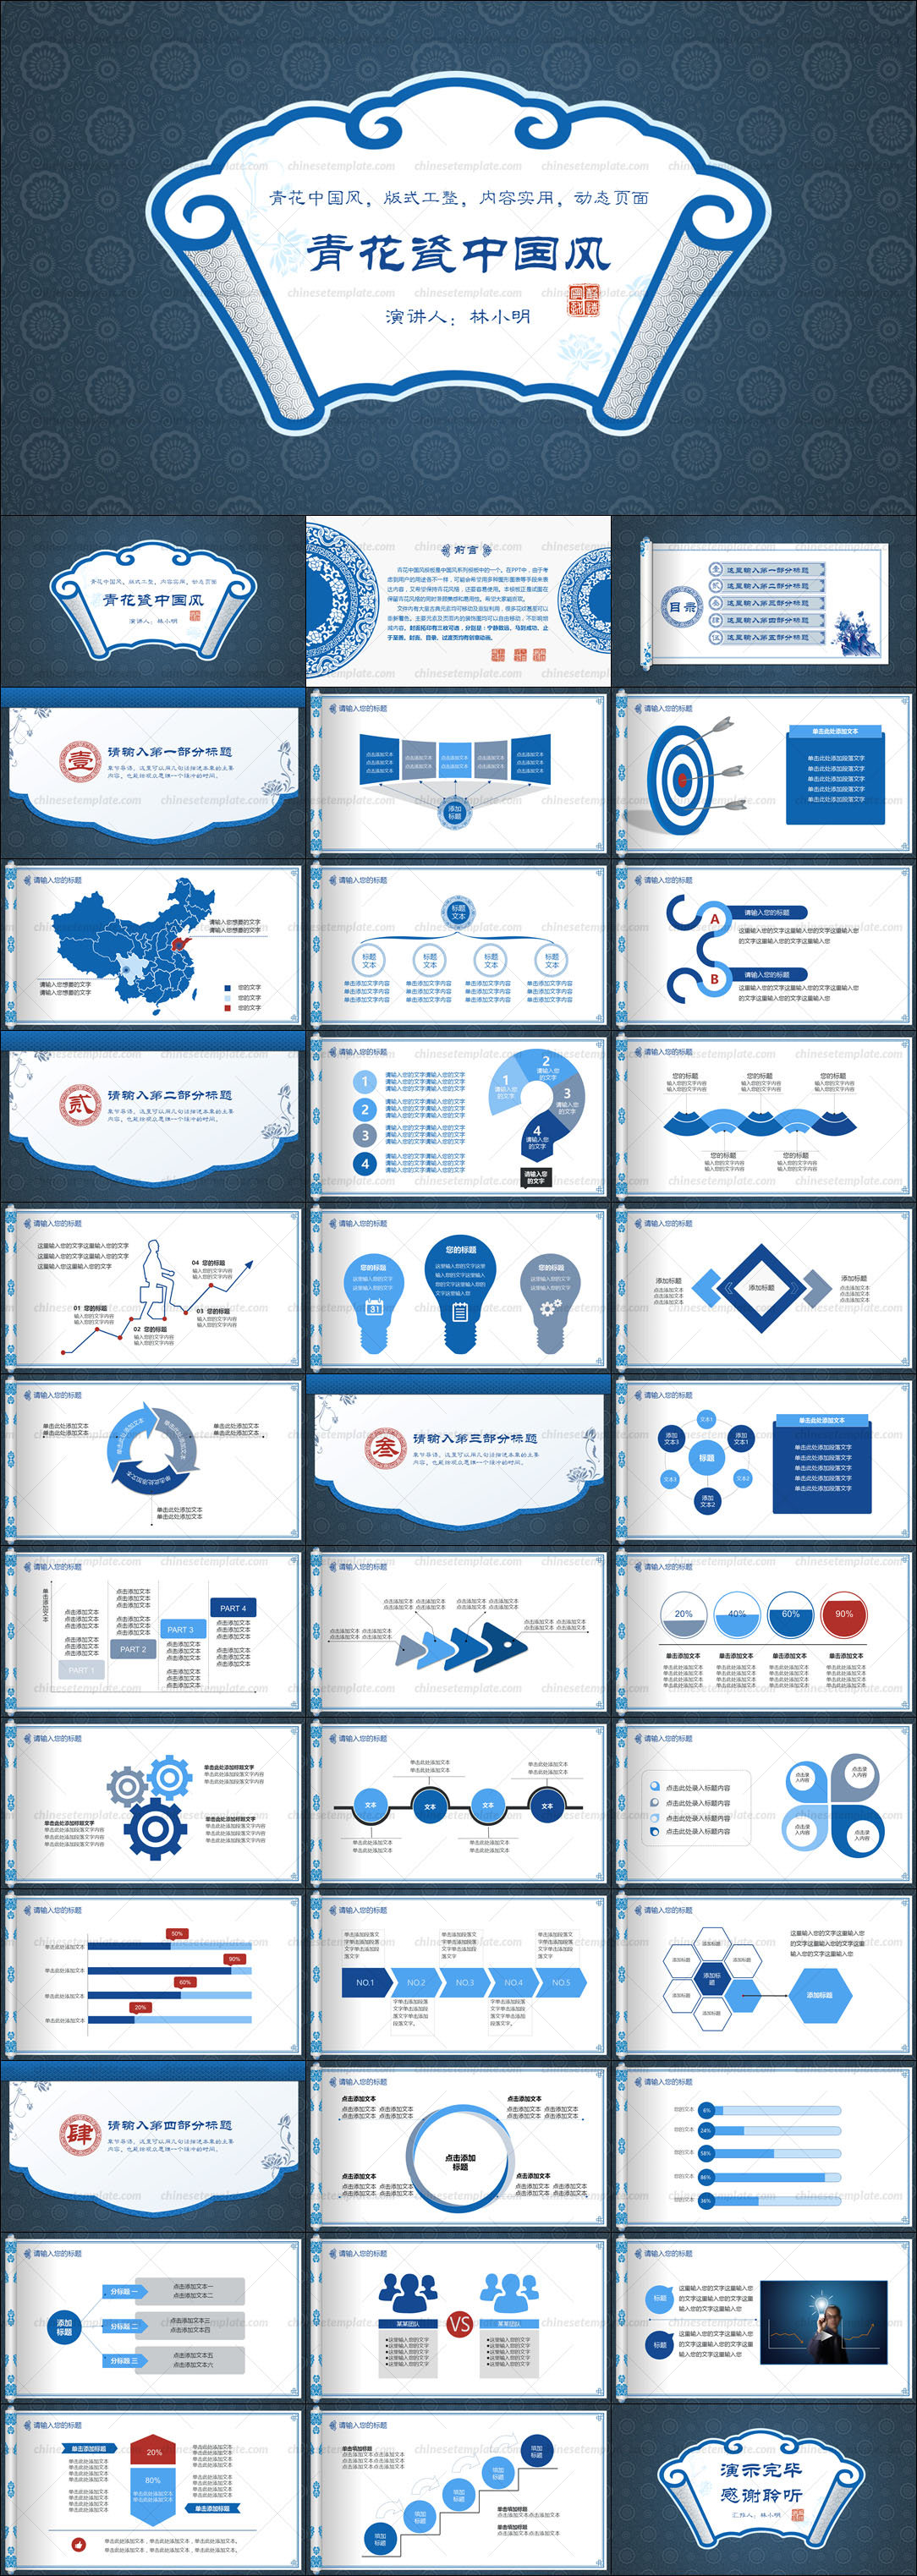 Blue and White Porcelain China Style PowerPoint Template